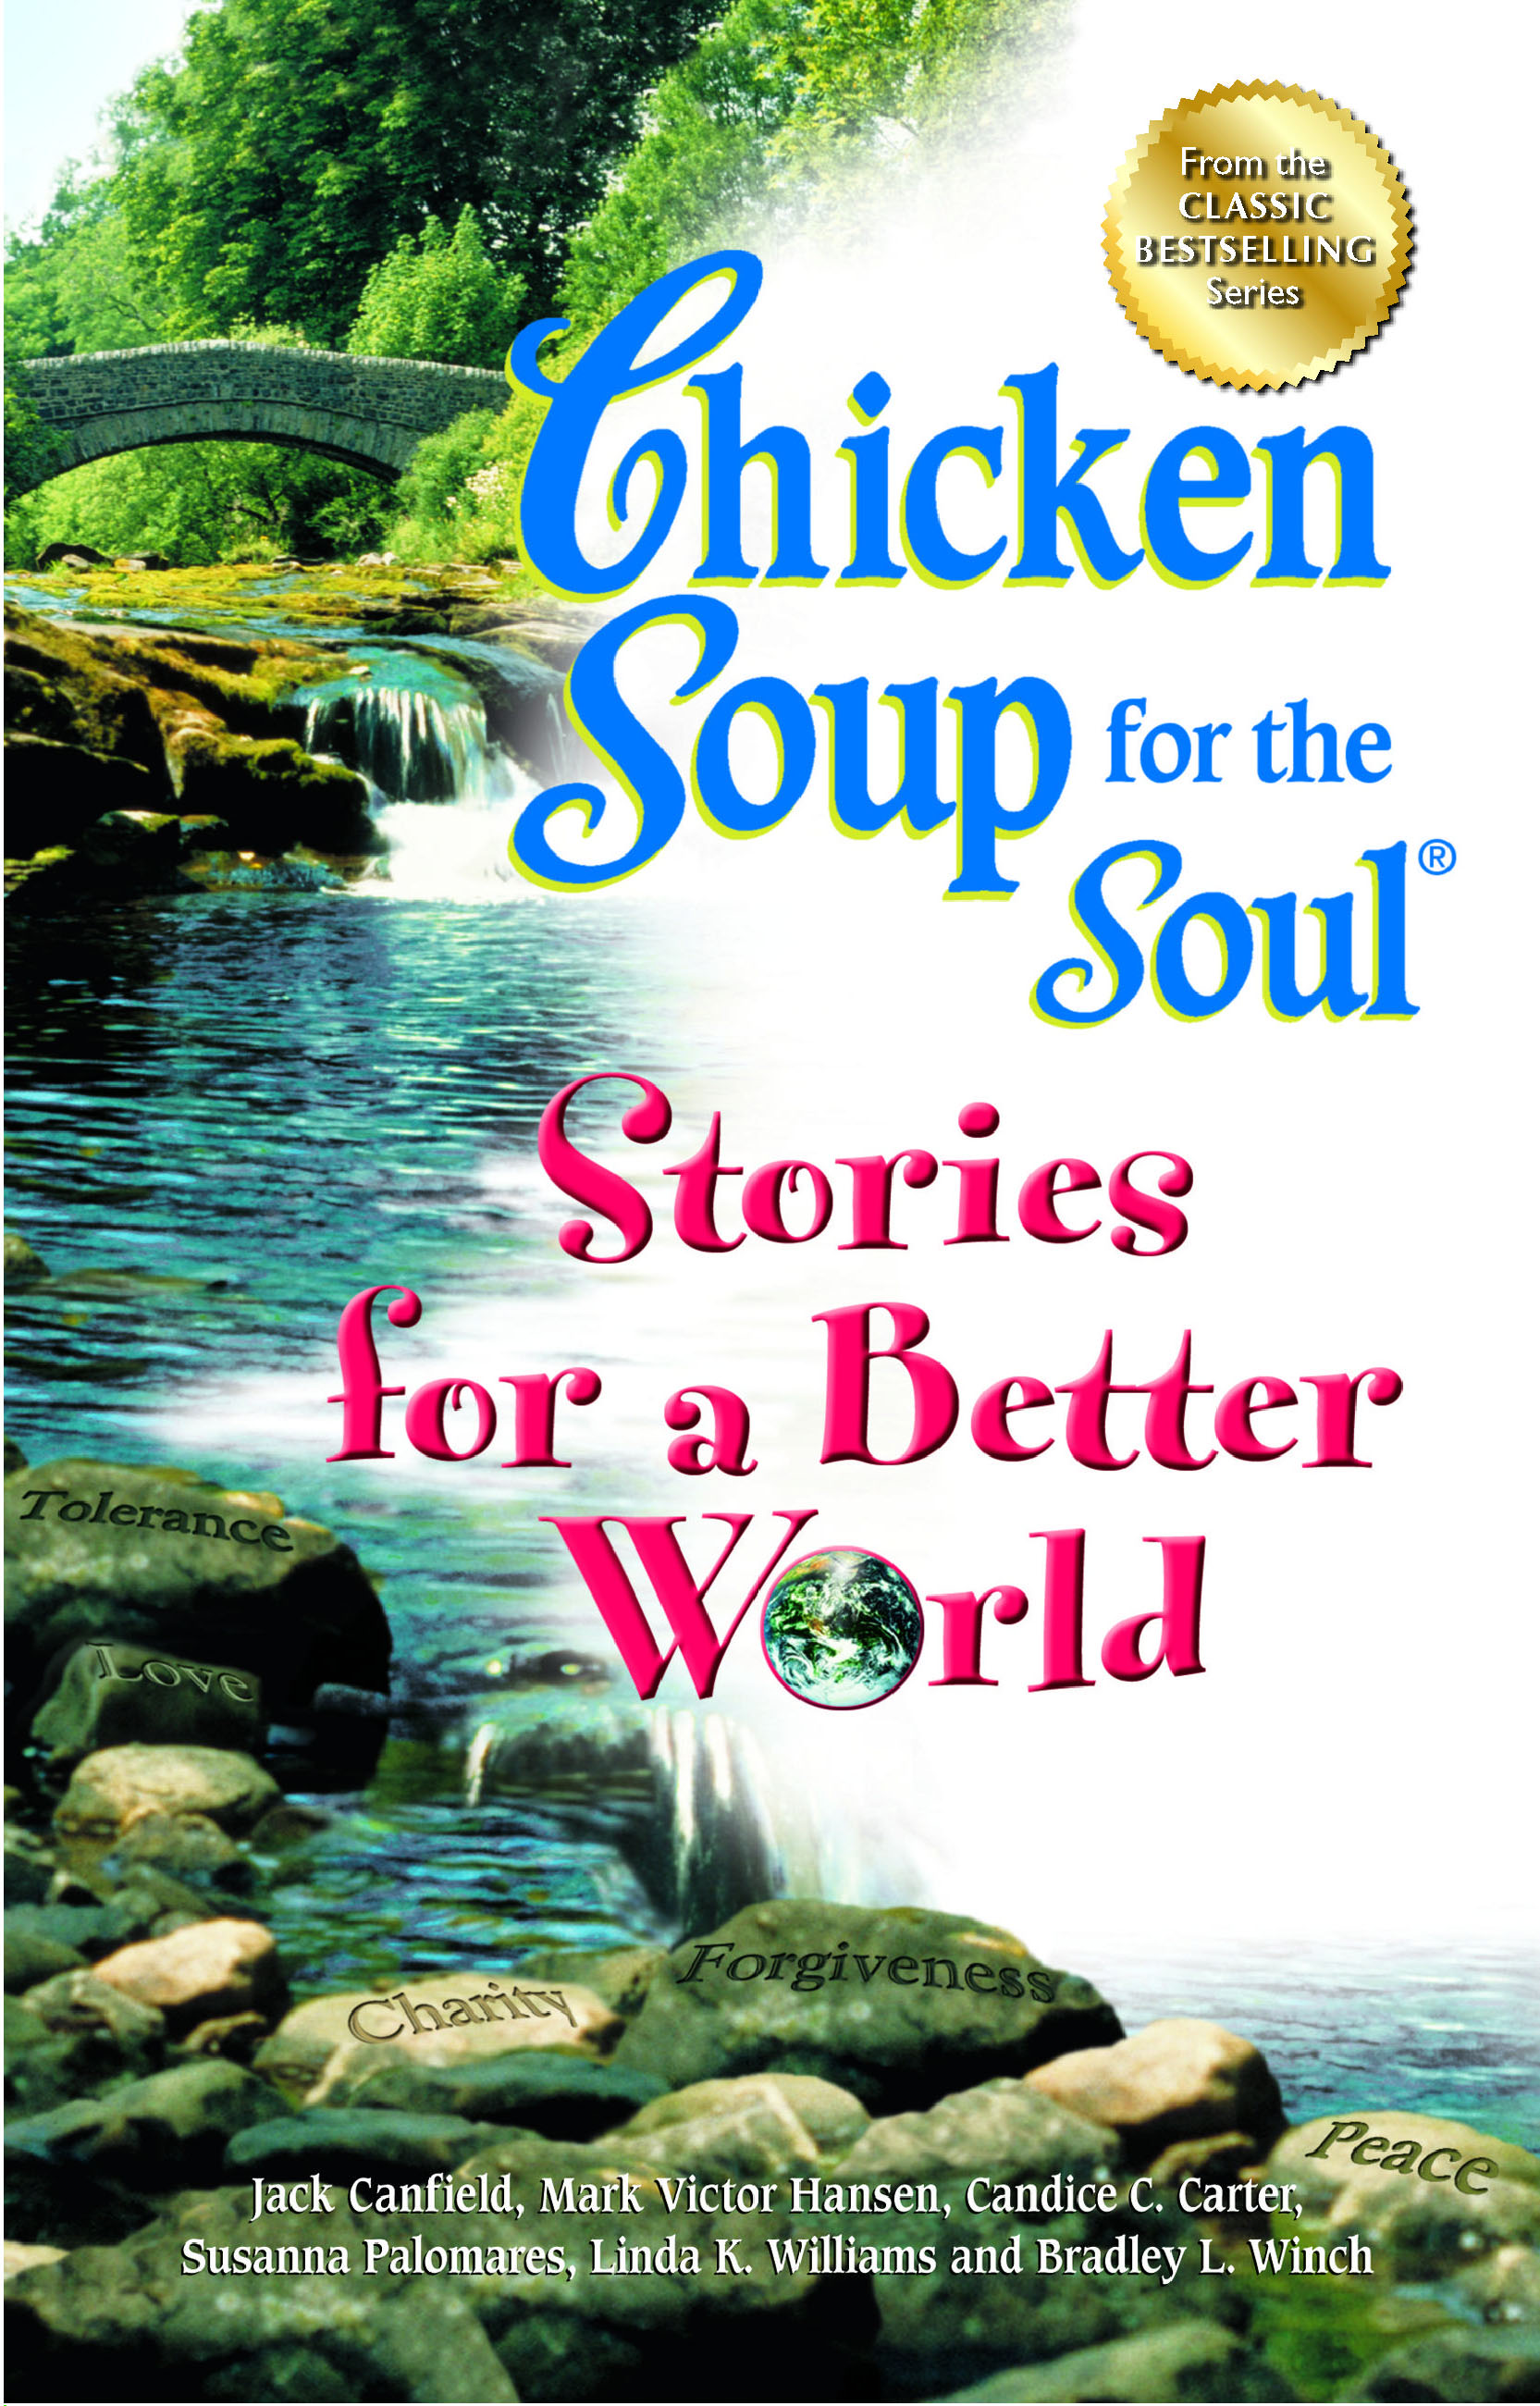 Best Audiobooks Ever >> Chicken Soup for the Soul Stories for a Better World | Book by Jack Canfield, Mark Victor Hansen ...